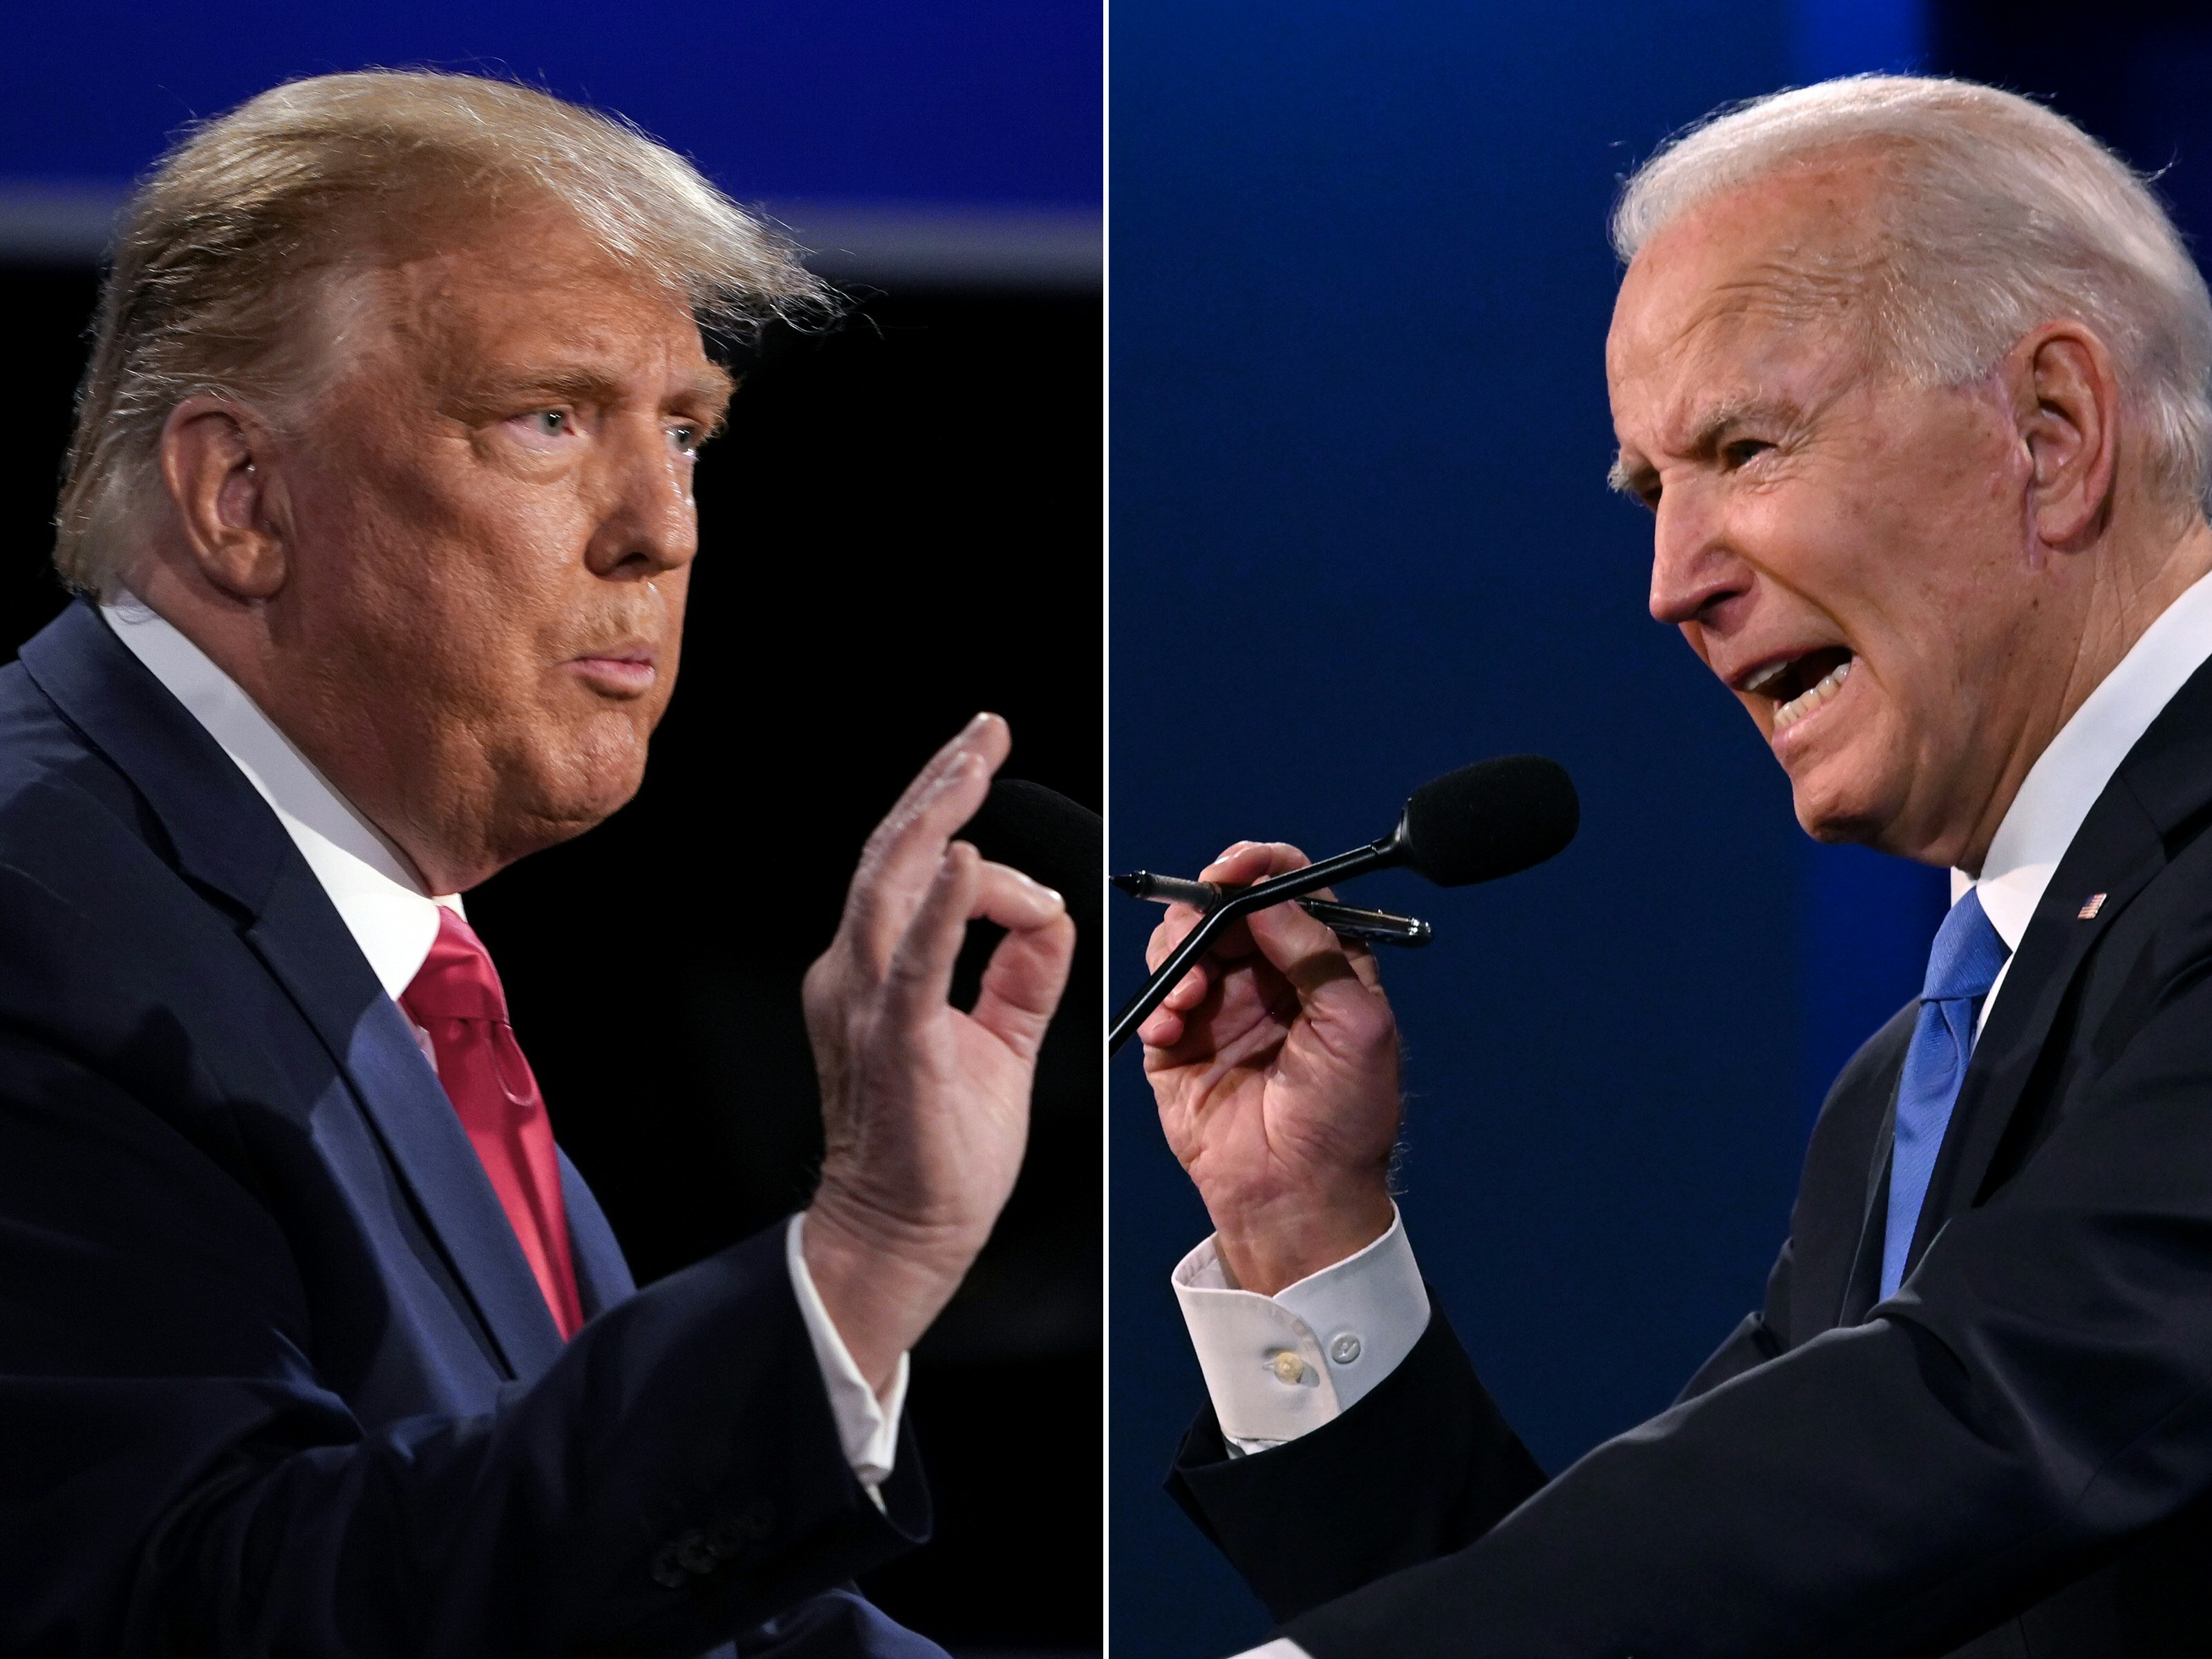 Opinion Elecciones En Estados Unidos Trump Y Biden Sobre México The Washington Post